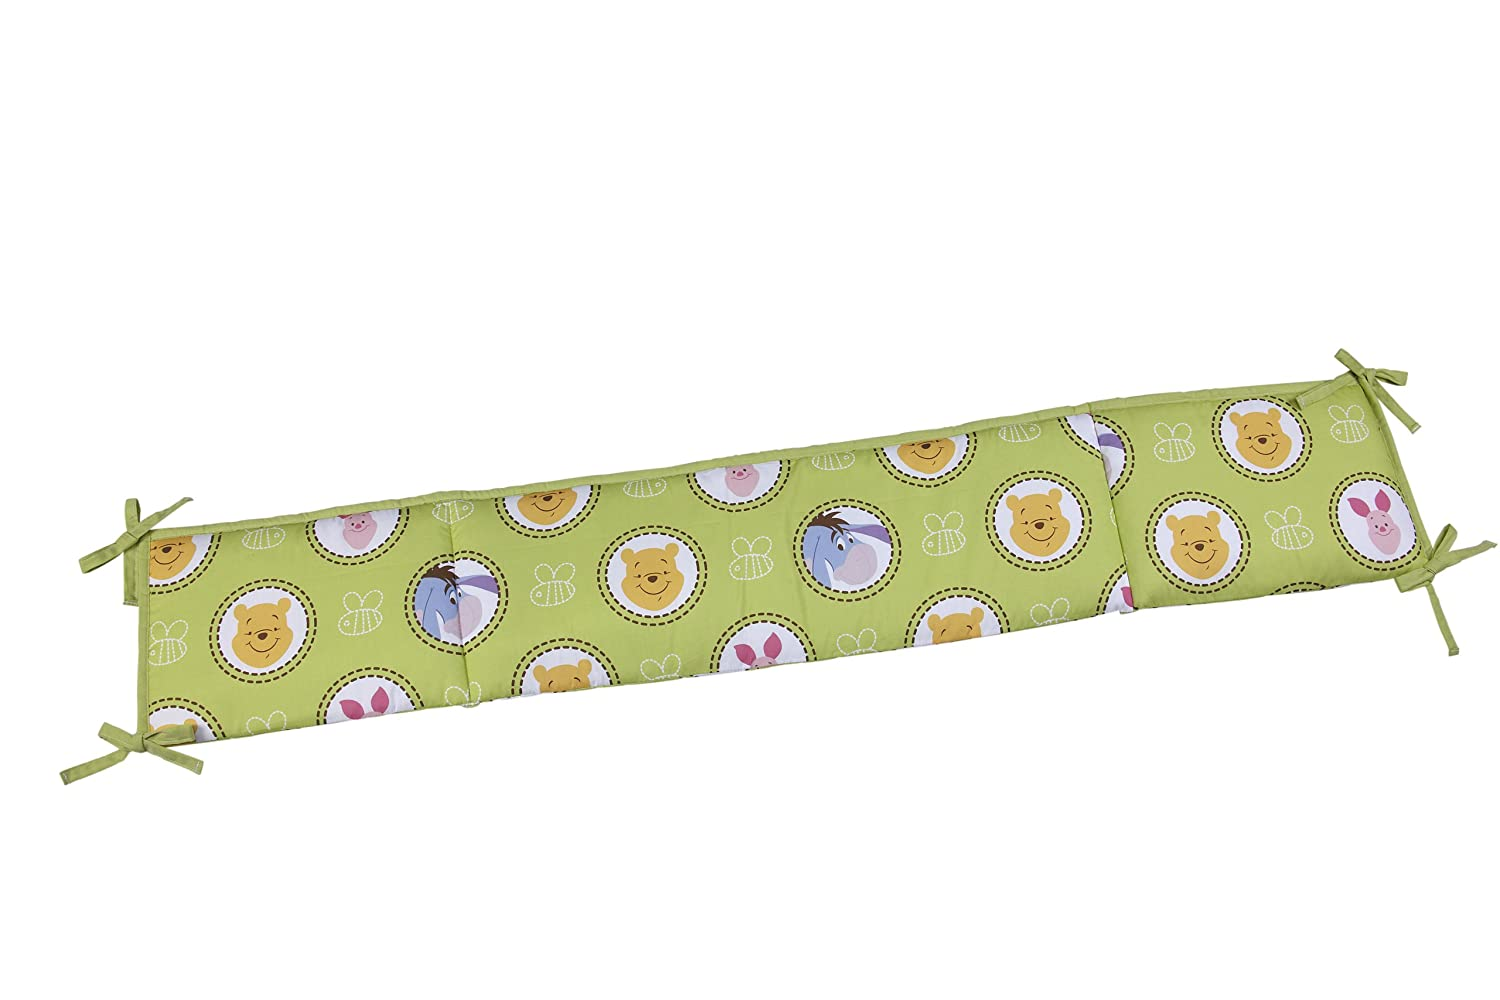 Winnie the Pooh Playful Pooh Traditional Padded Bumper by Disney Baby